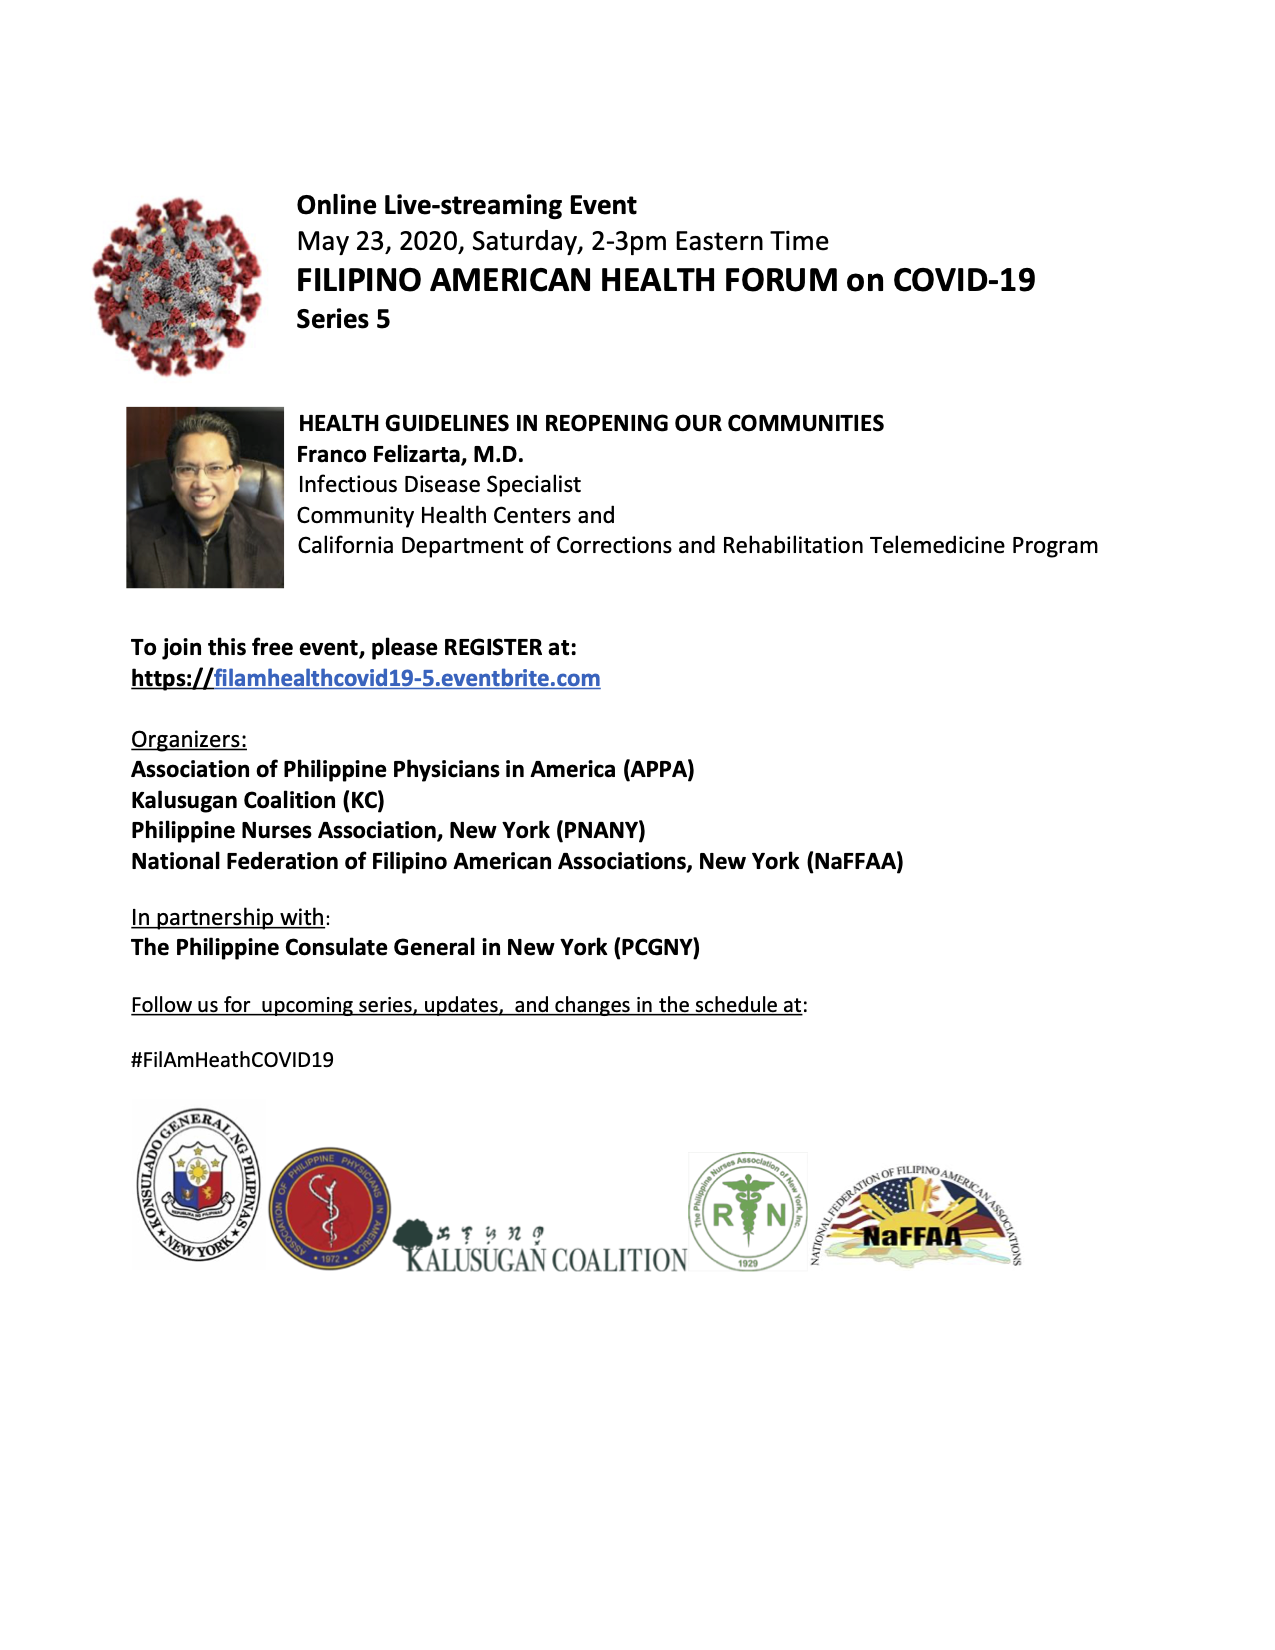 Series5-Filipino American Health Series on COVID